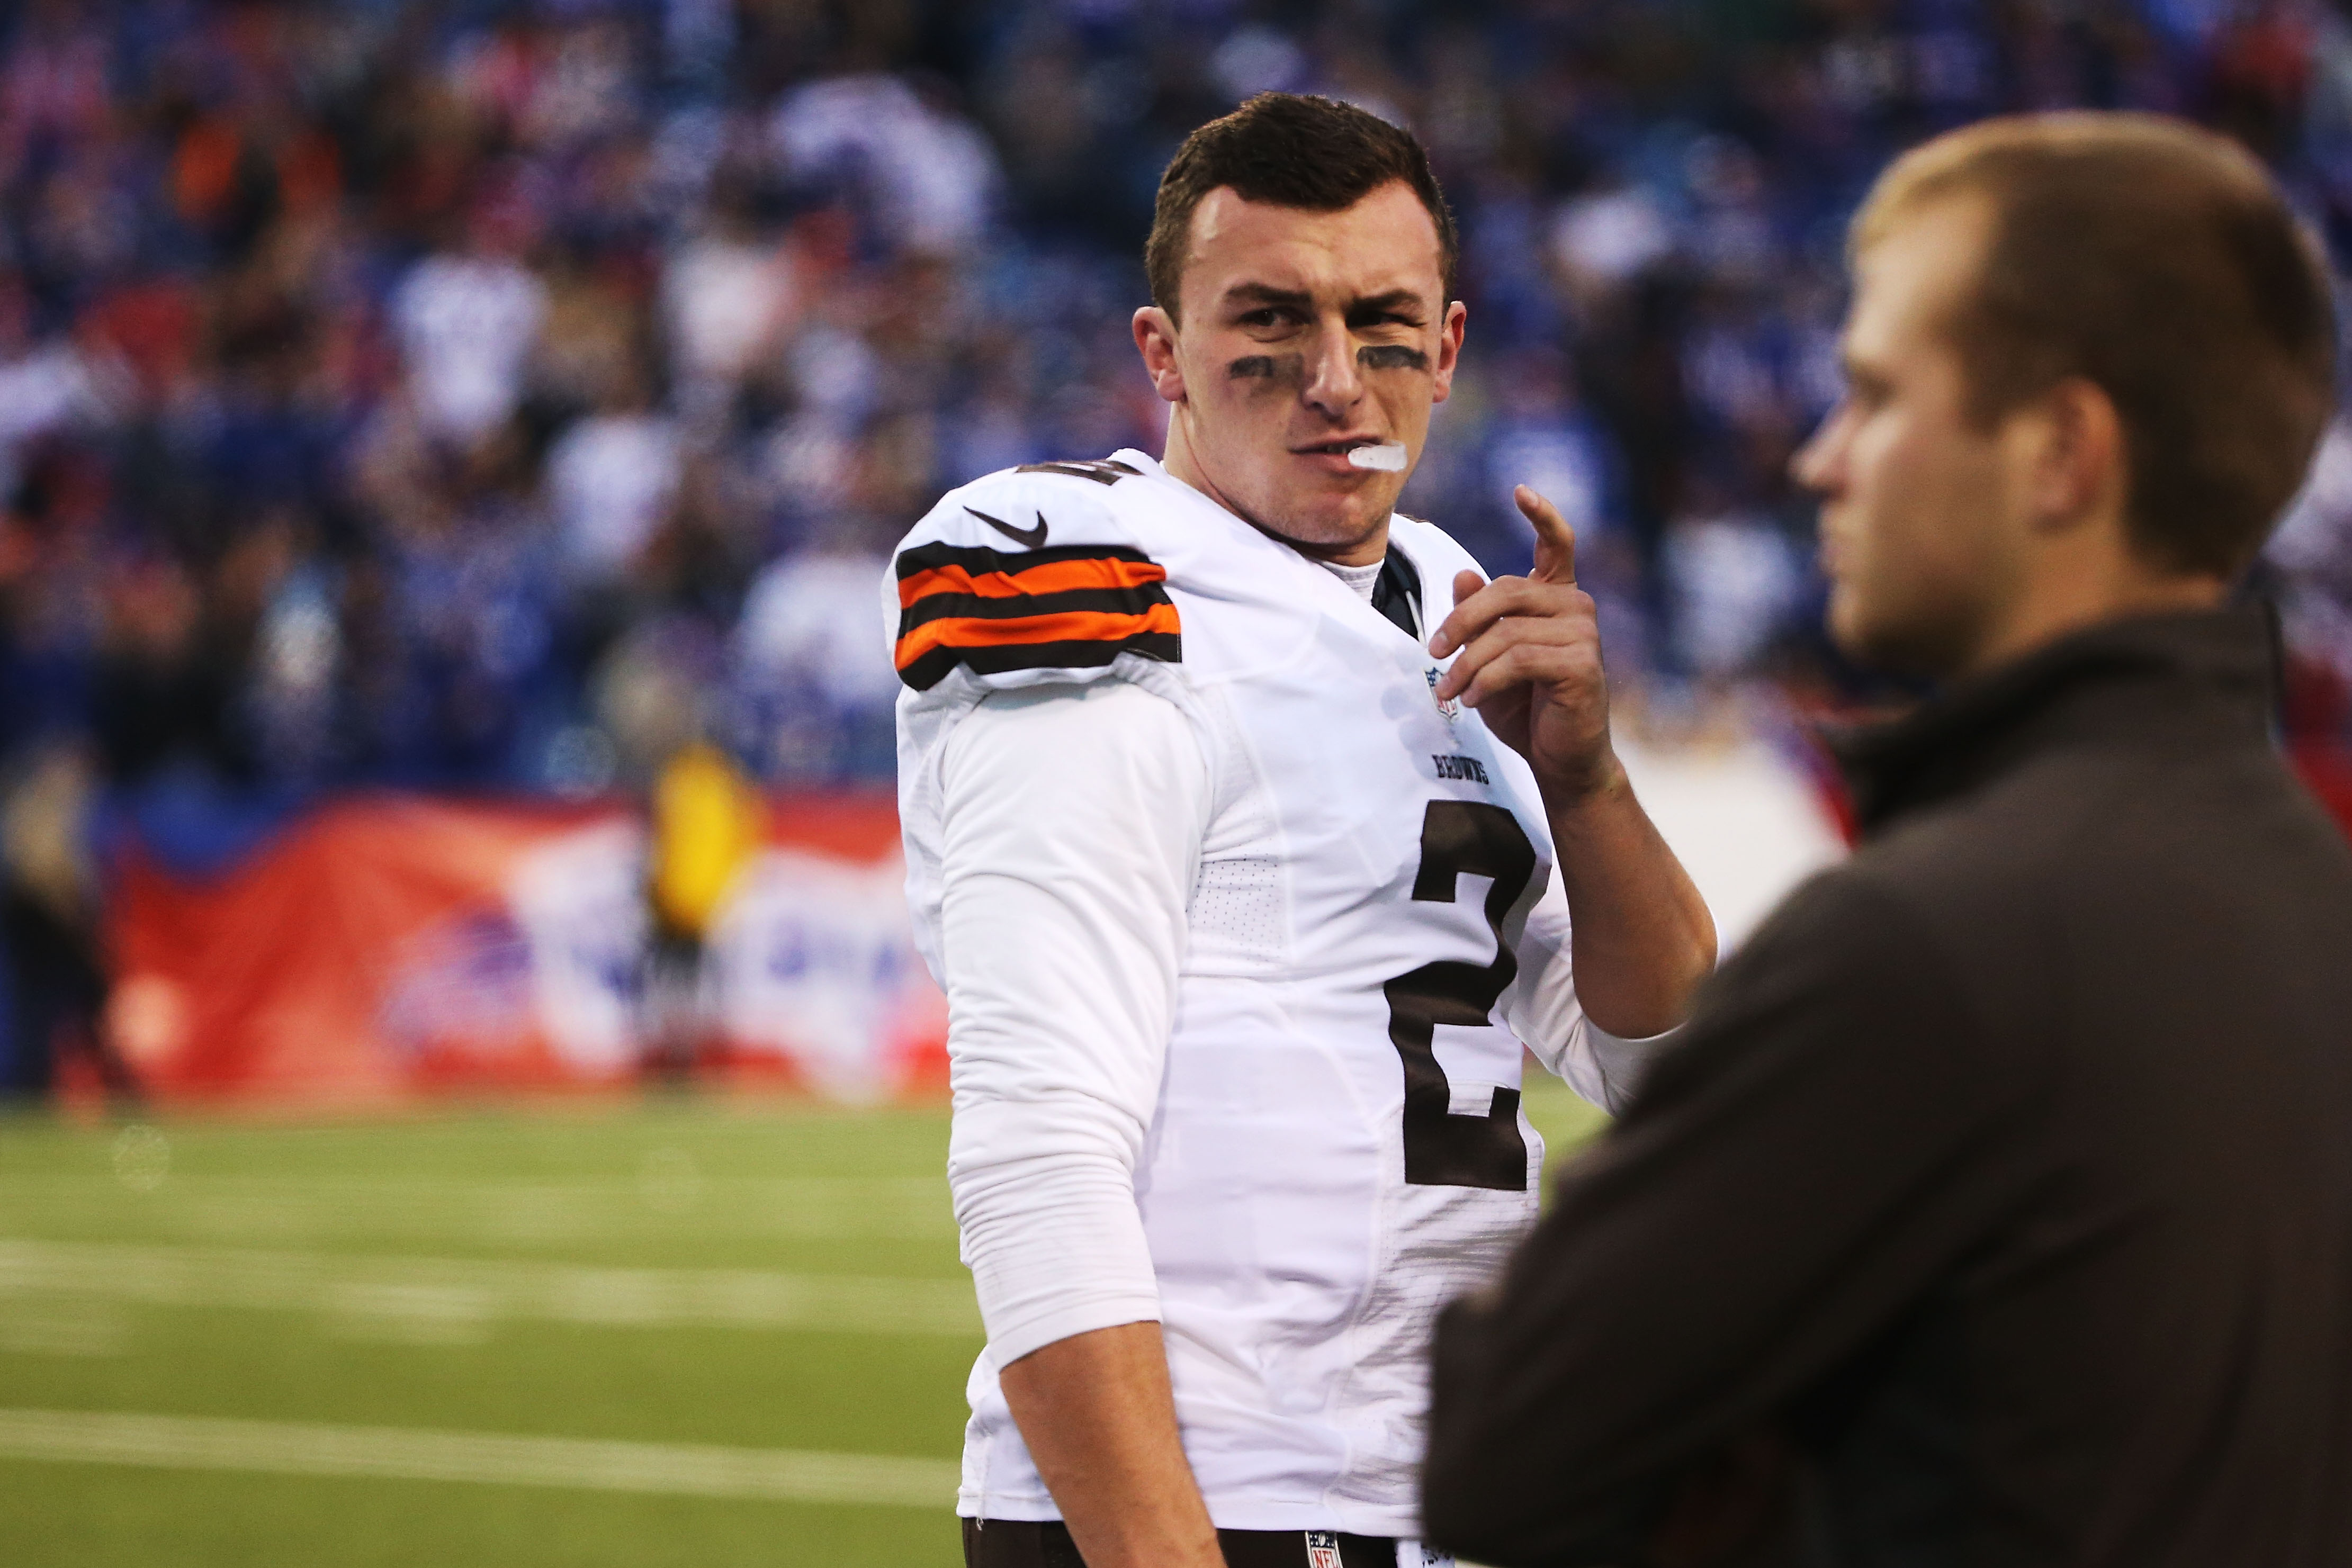 Johnny Manziel of the Cleveland Browns at Ralph Wilson Stadium on Nov. 30, 2014 in Orchard Park, New York. (credit: Tom Szczerbowski/Getty Images)